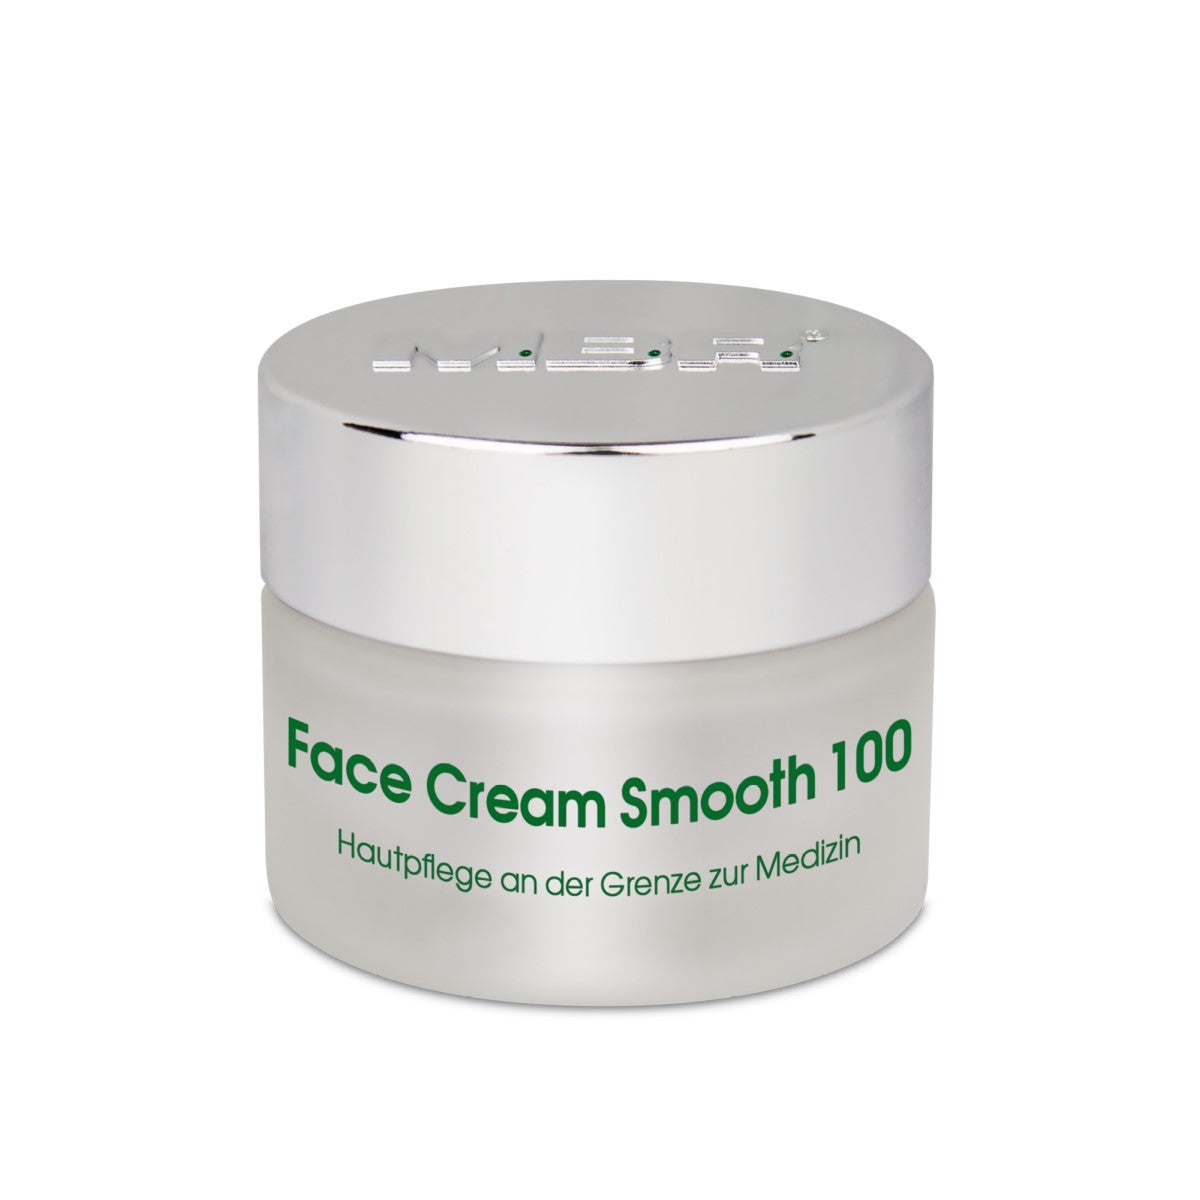 Face Cream Smooth 100 - MBR